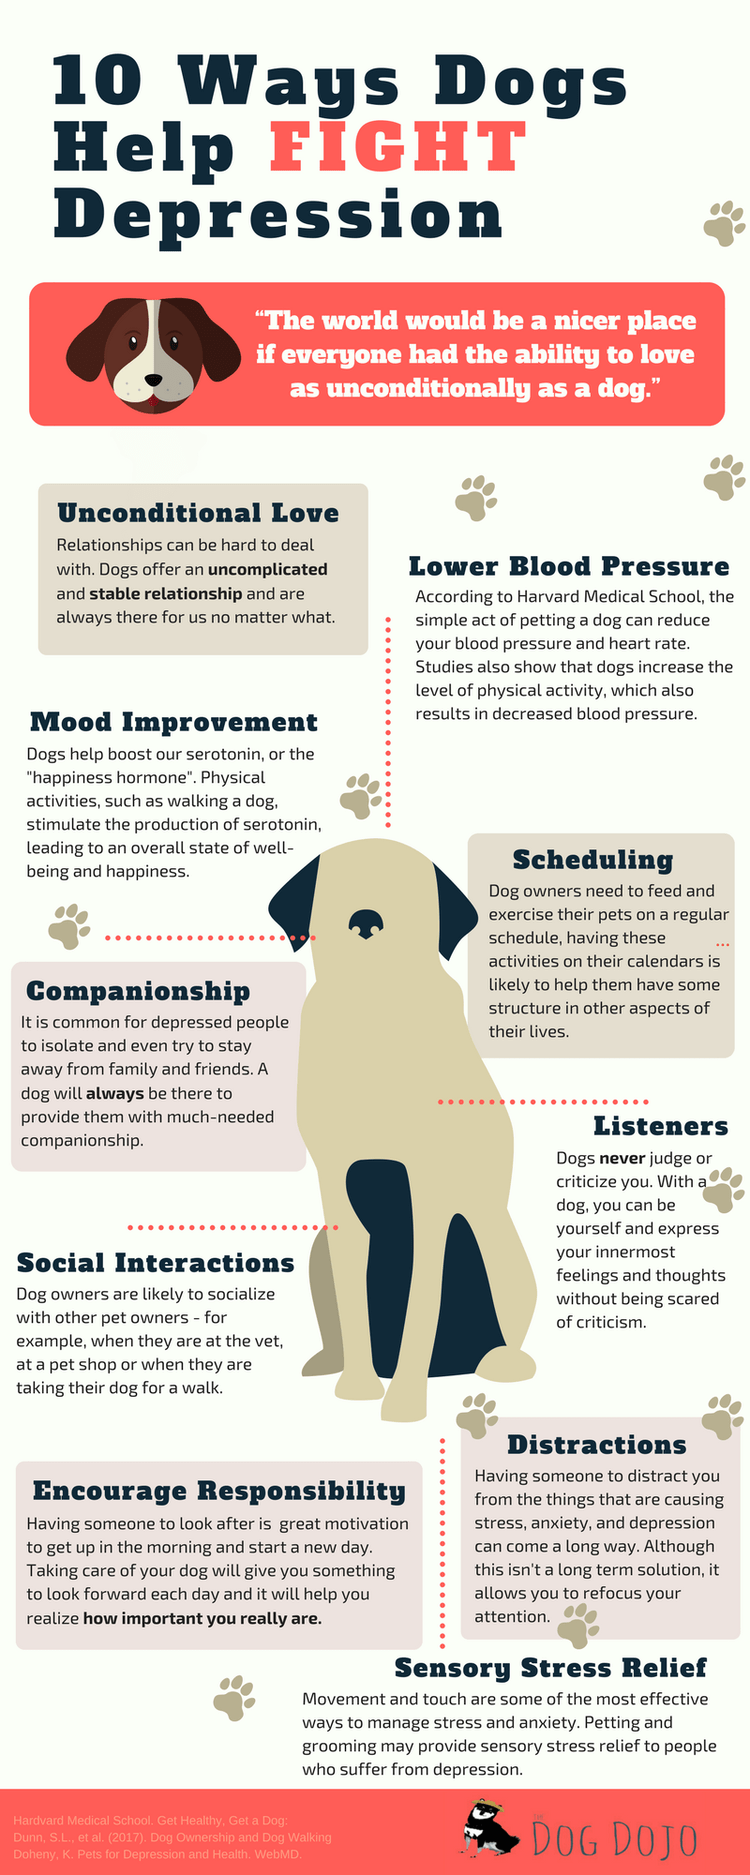 FitBark_dog_depression | 10 Ways Dogs Help Fight Depression